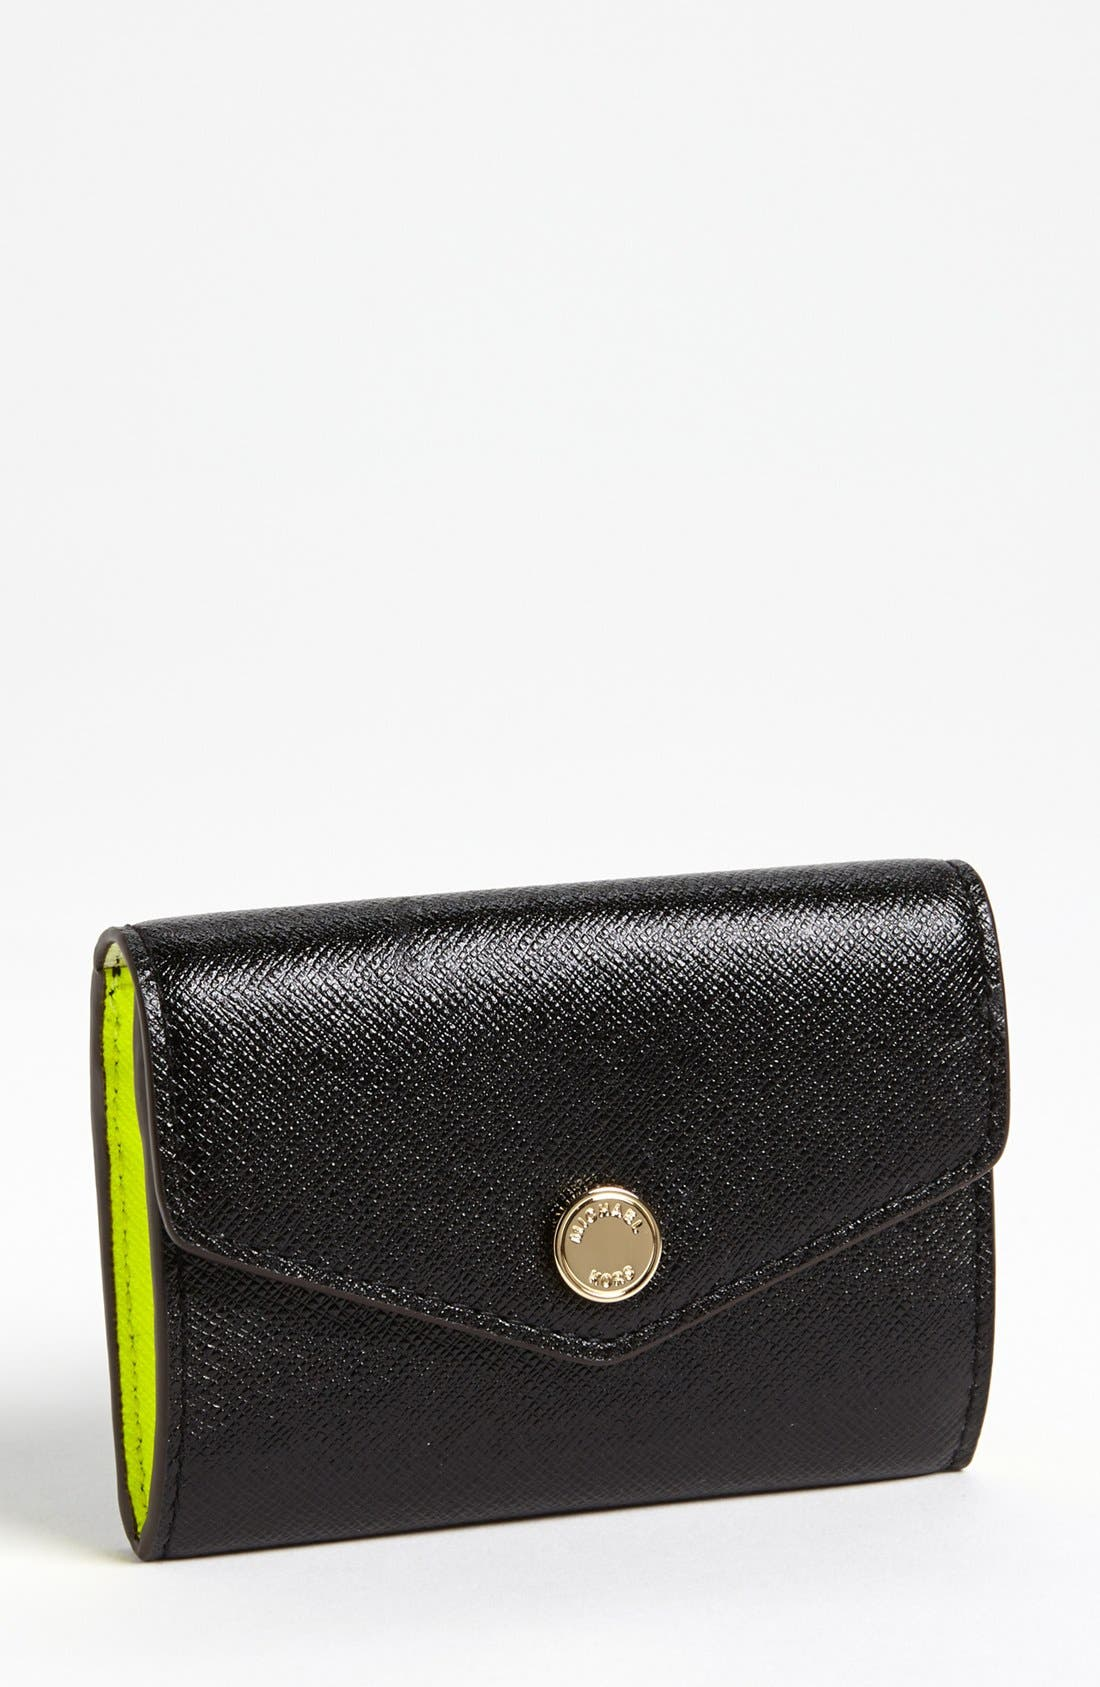 Alternate Image 1 Selected - MICHAEL Michael Kors Saffiano Leather Coin Purse